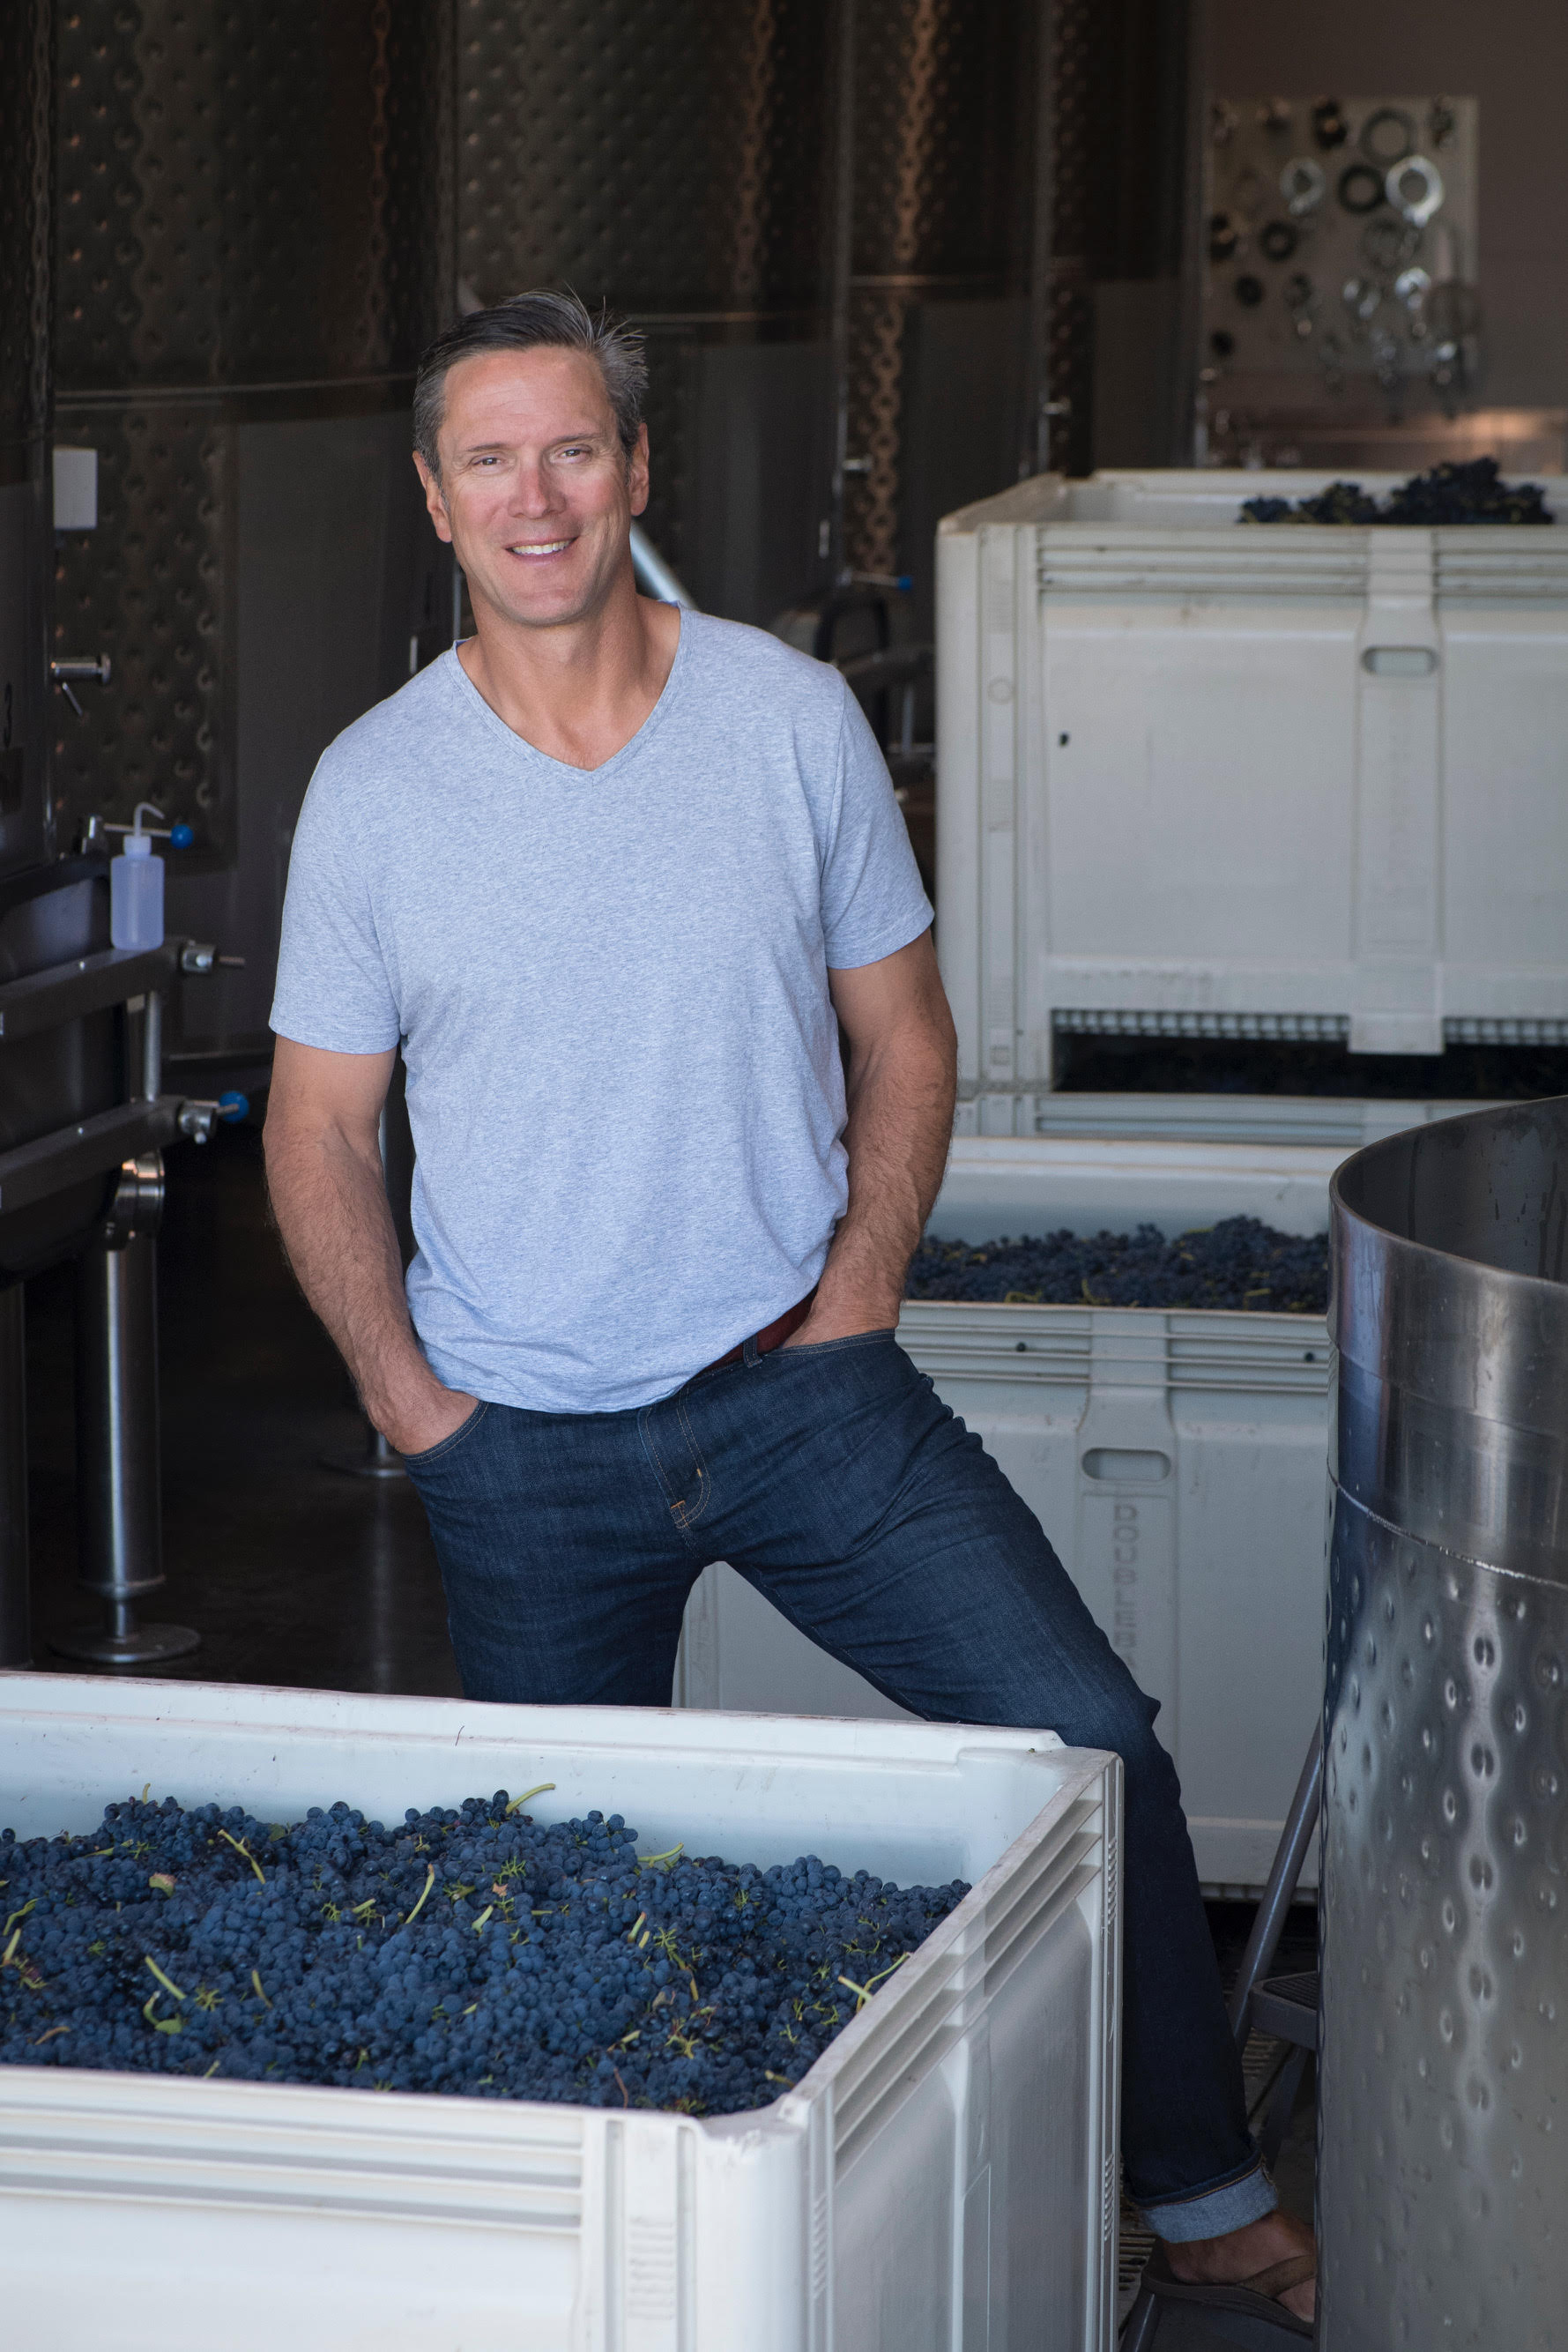 NFL legend and native Walla Wallan, Drew Bledoe, has some absolutely stunning new wines at his Walla Walla winery, Doubleback.